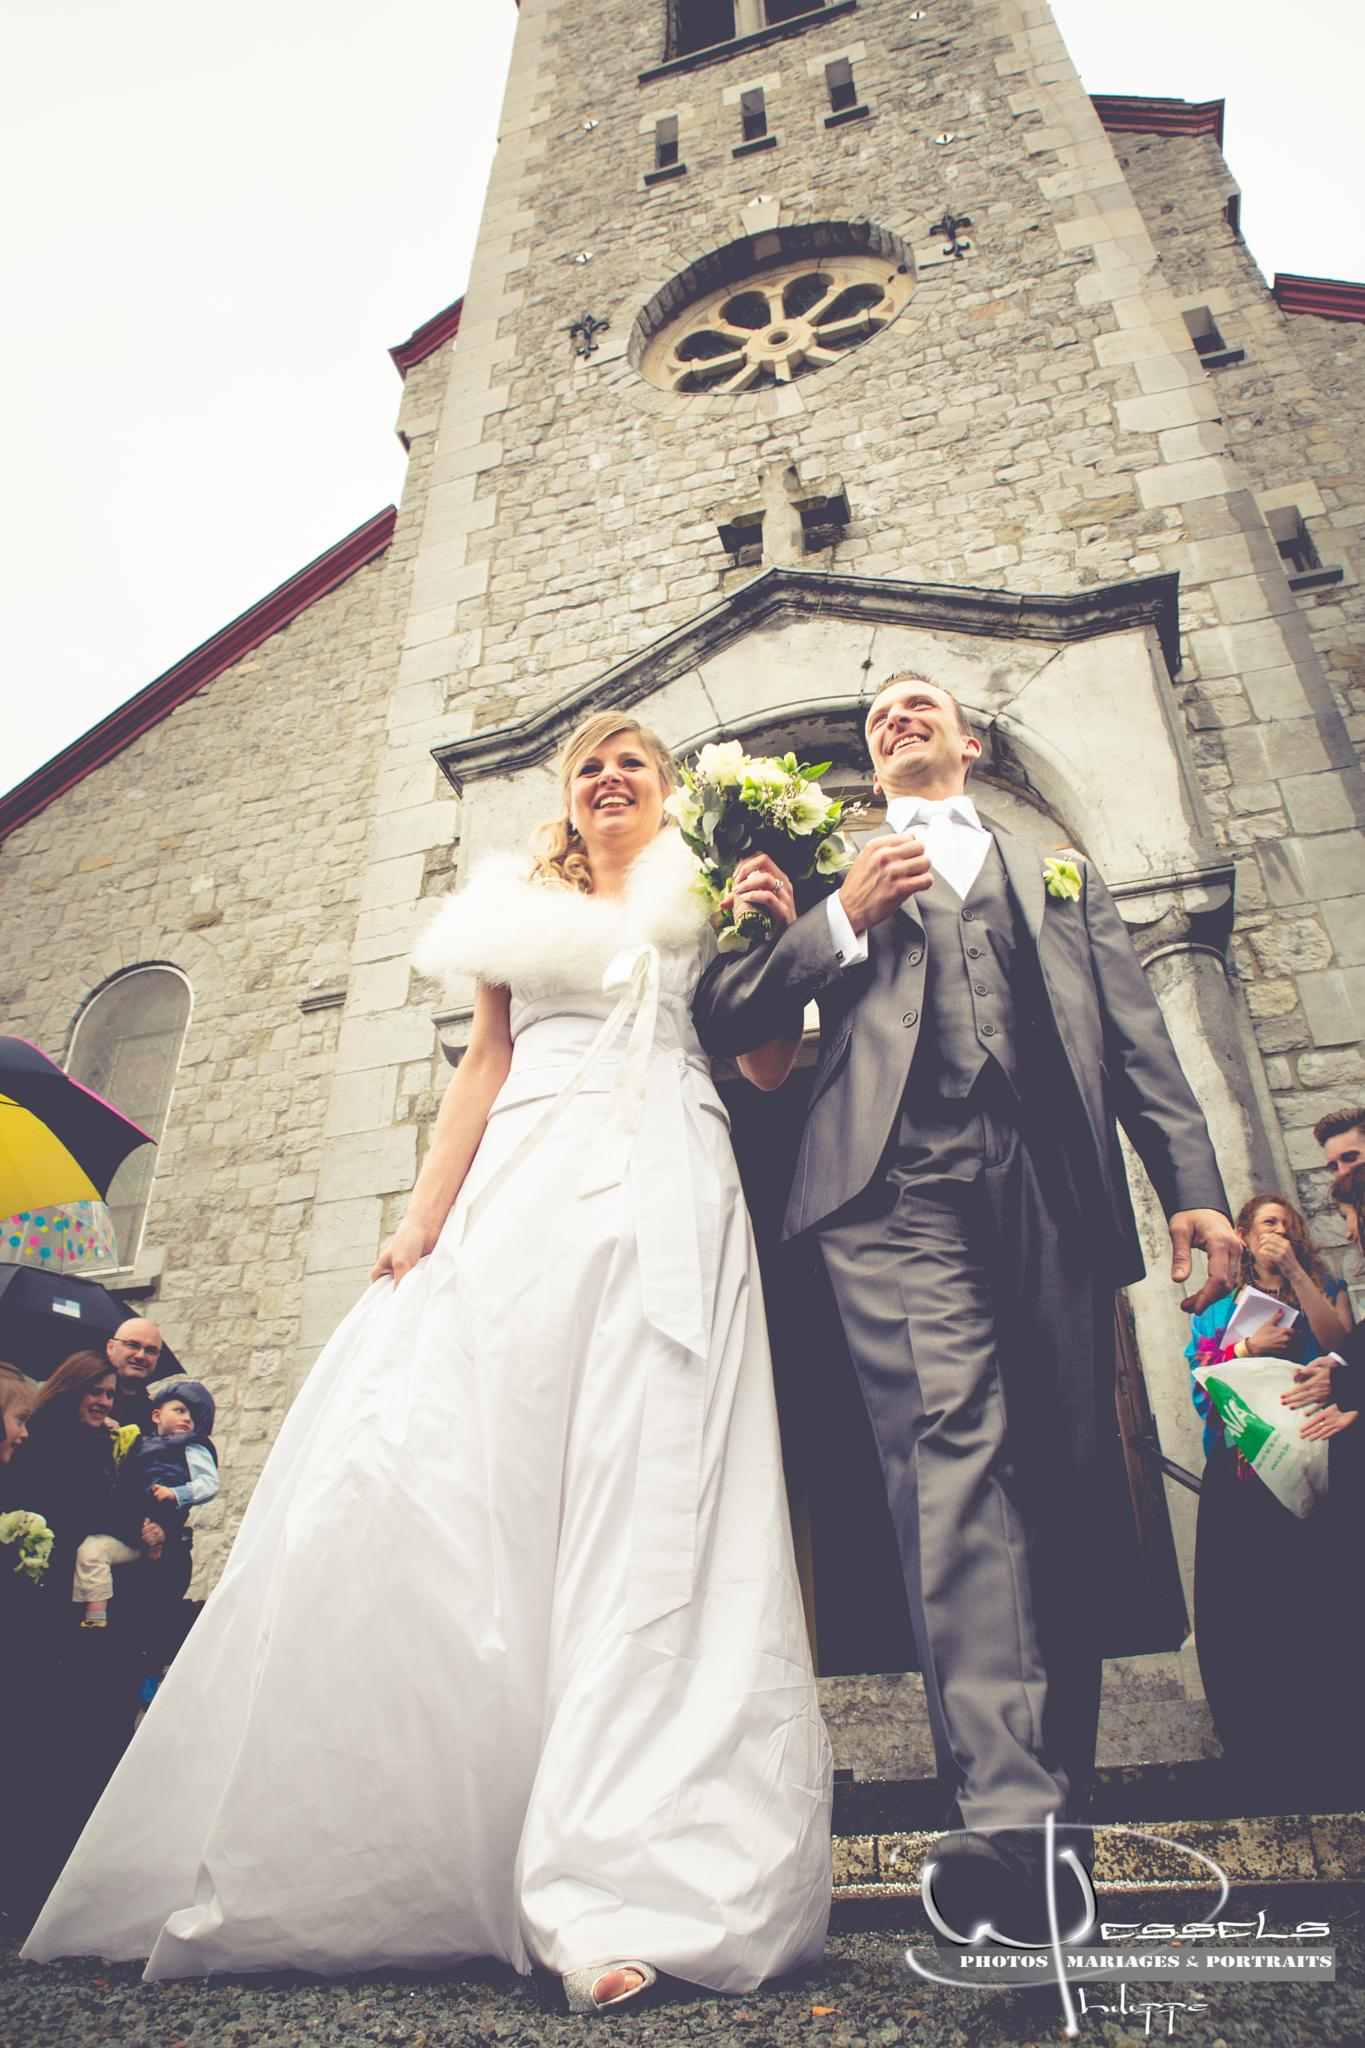 Kate and Gaet by philippewesselsphotographe